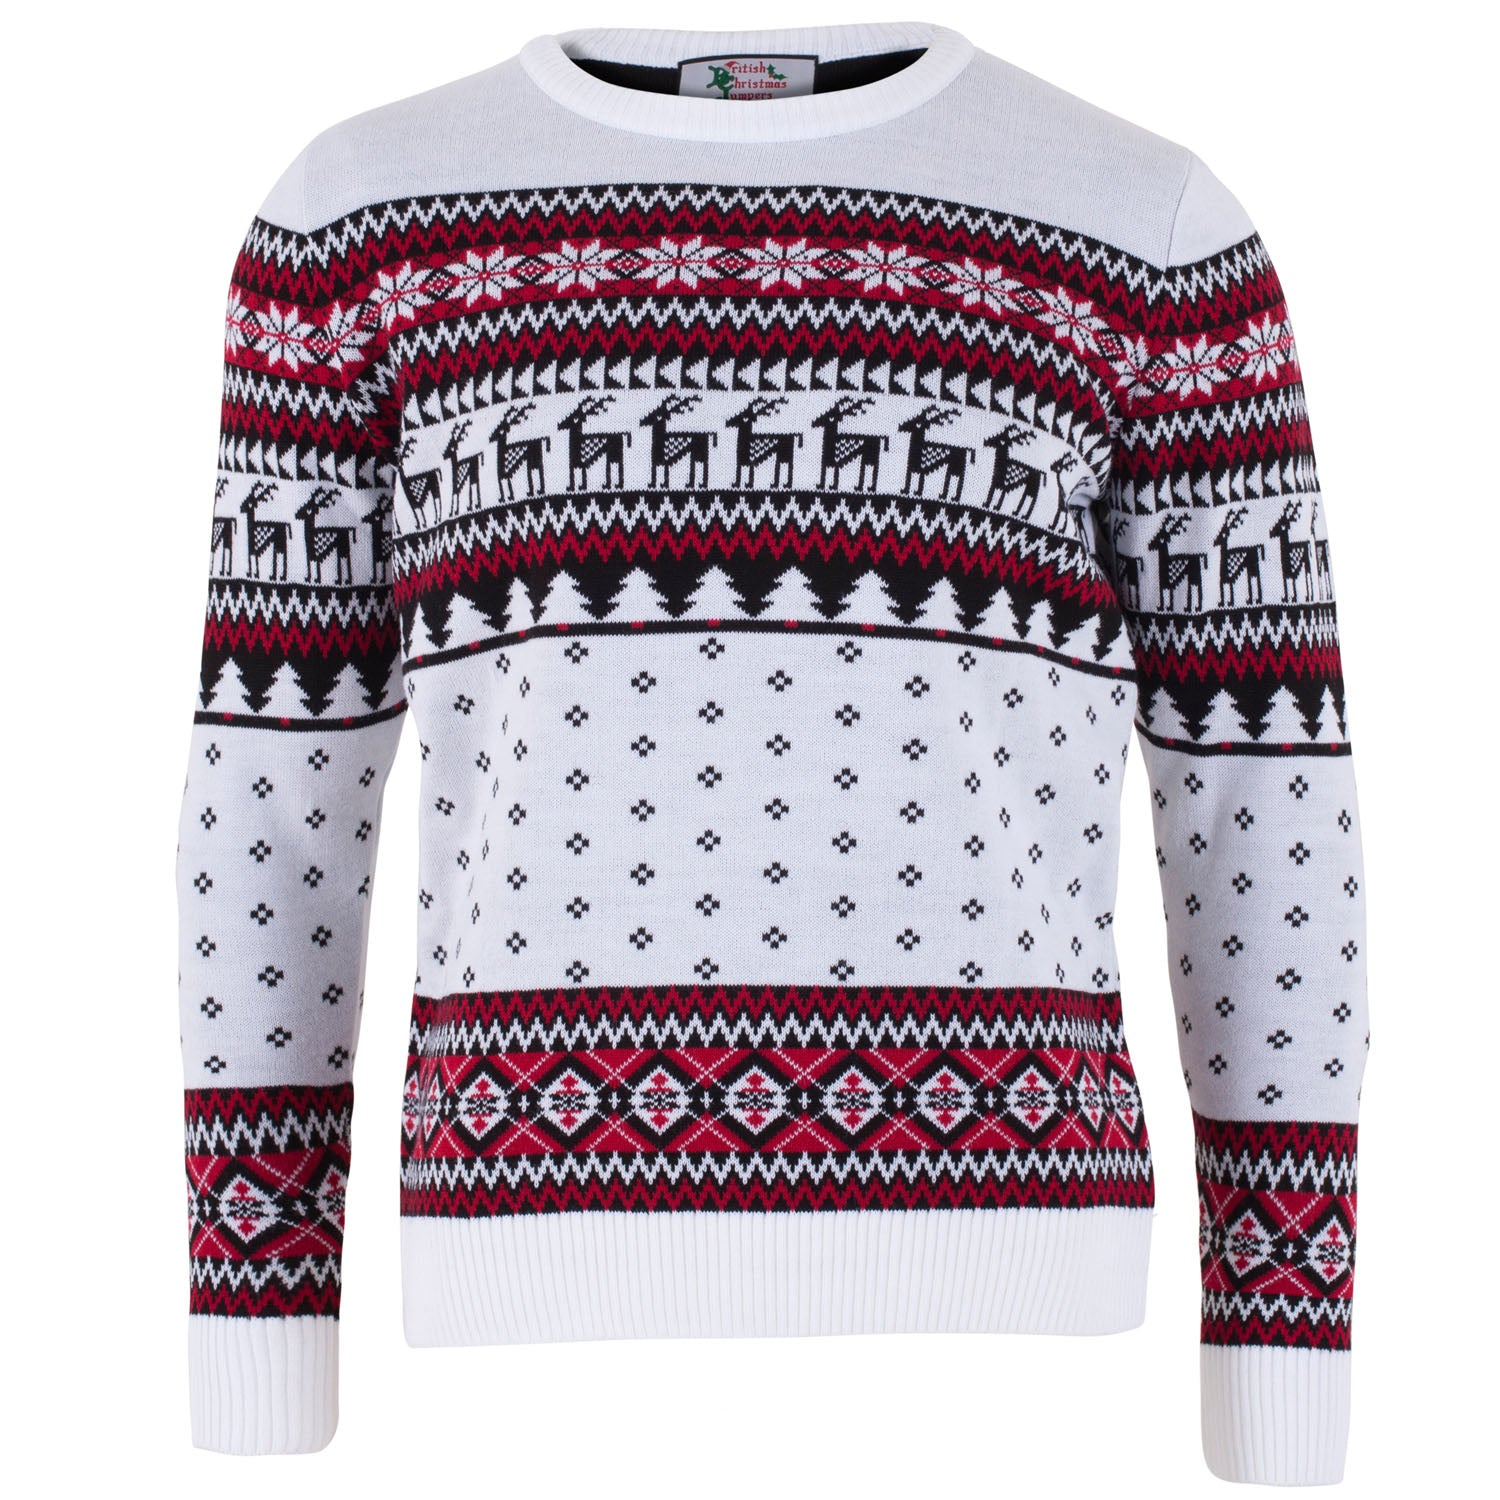 cce49b8f11 Mens Christmas Sweater Collection from British Christmas Jumpers ...